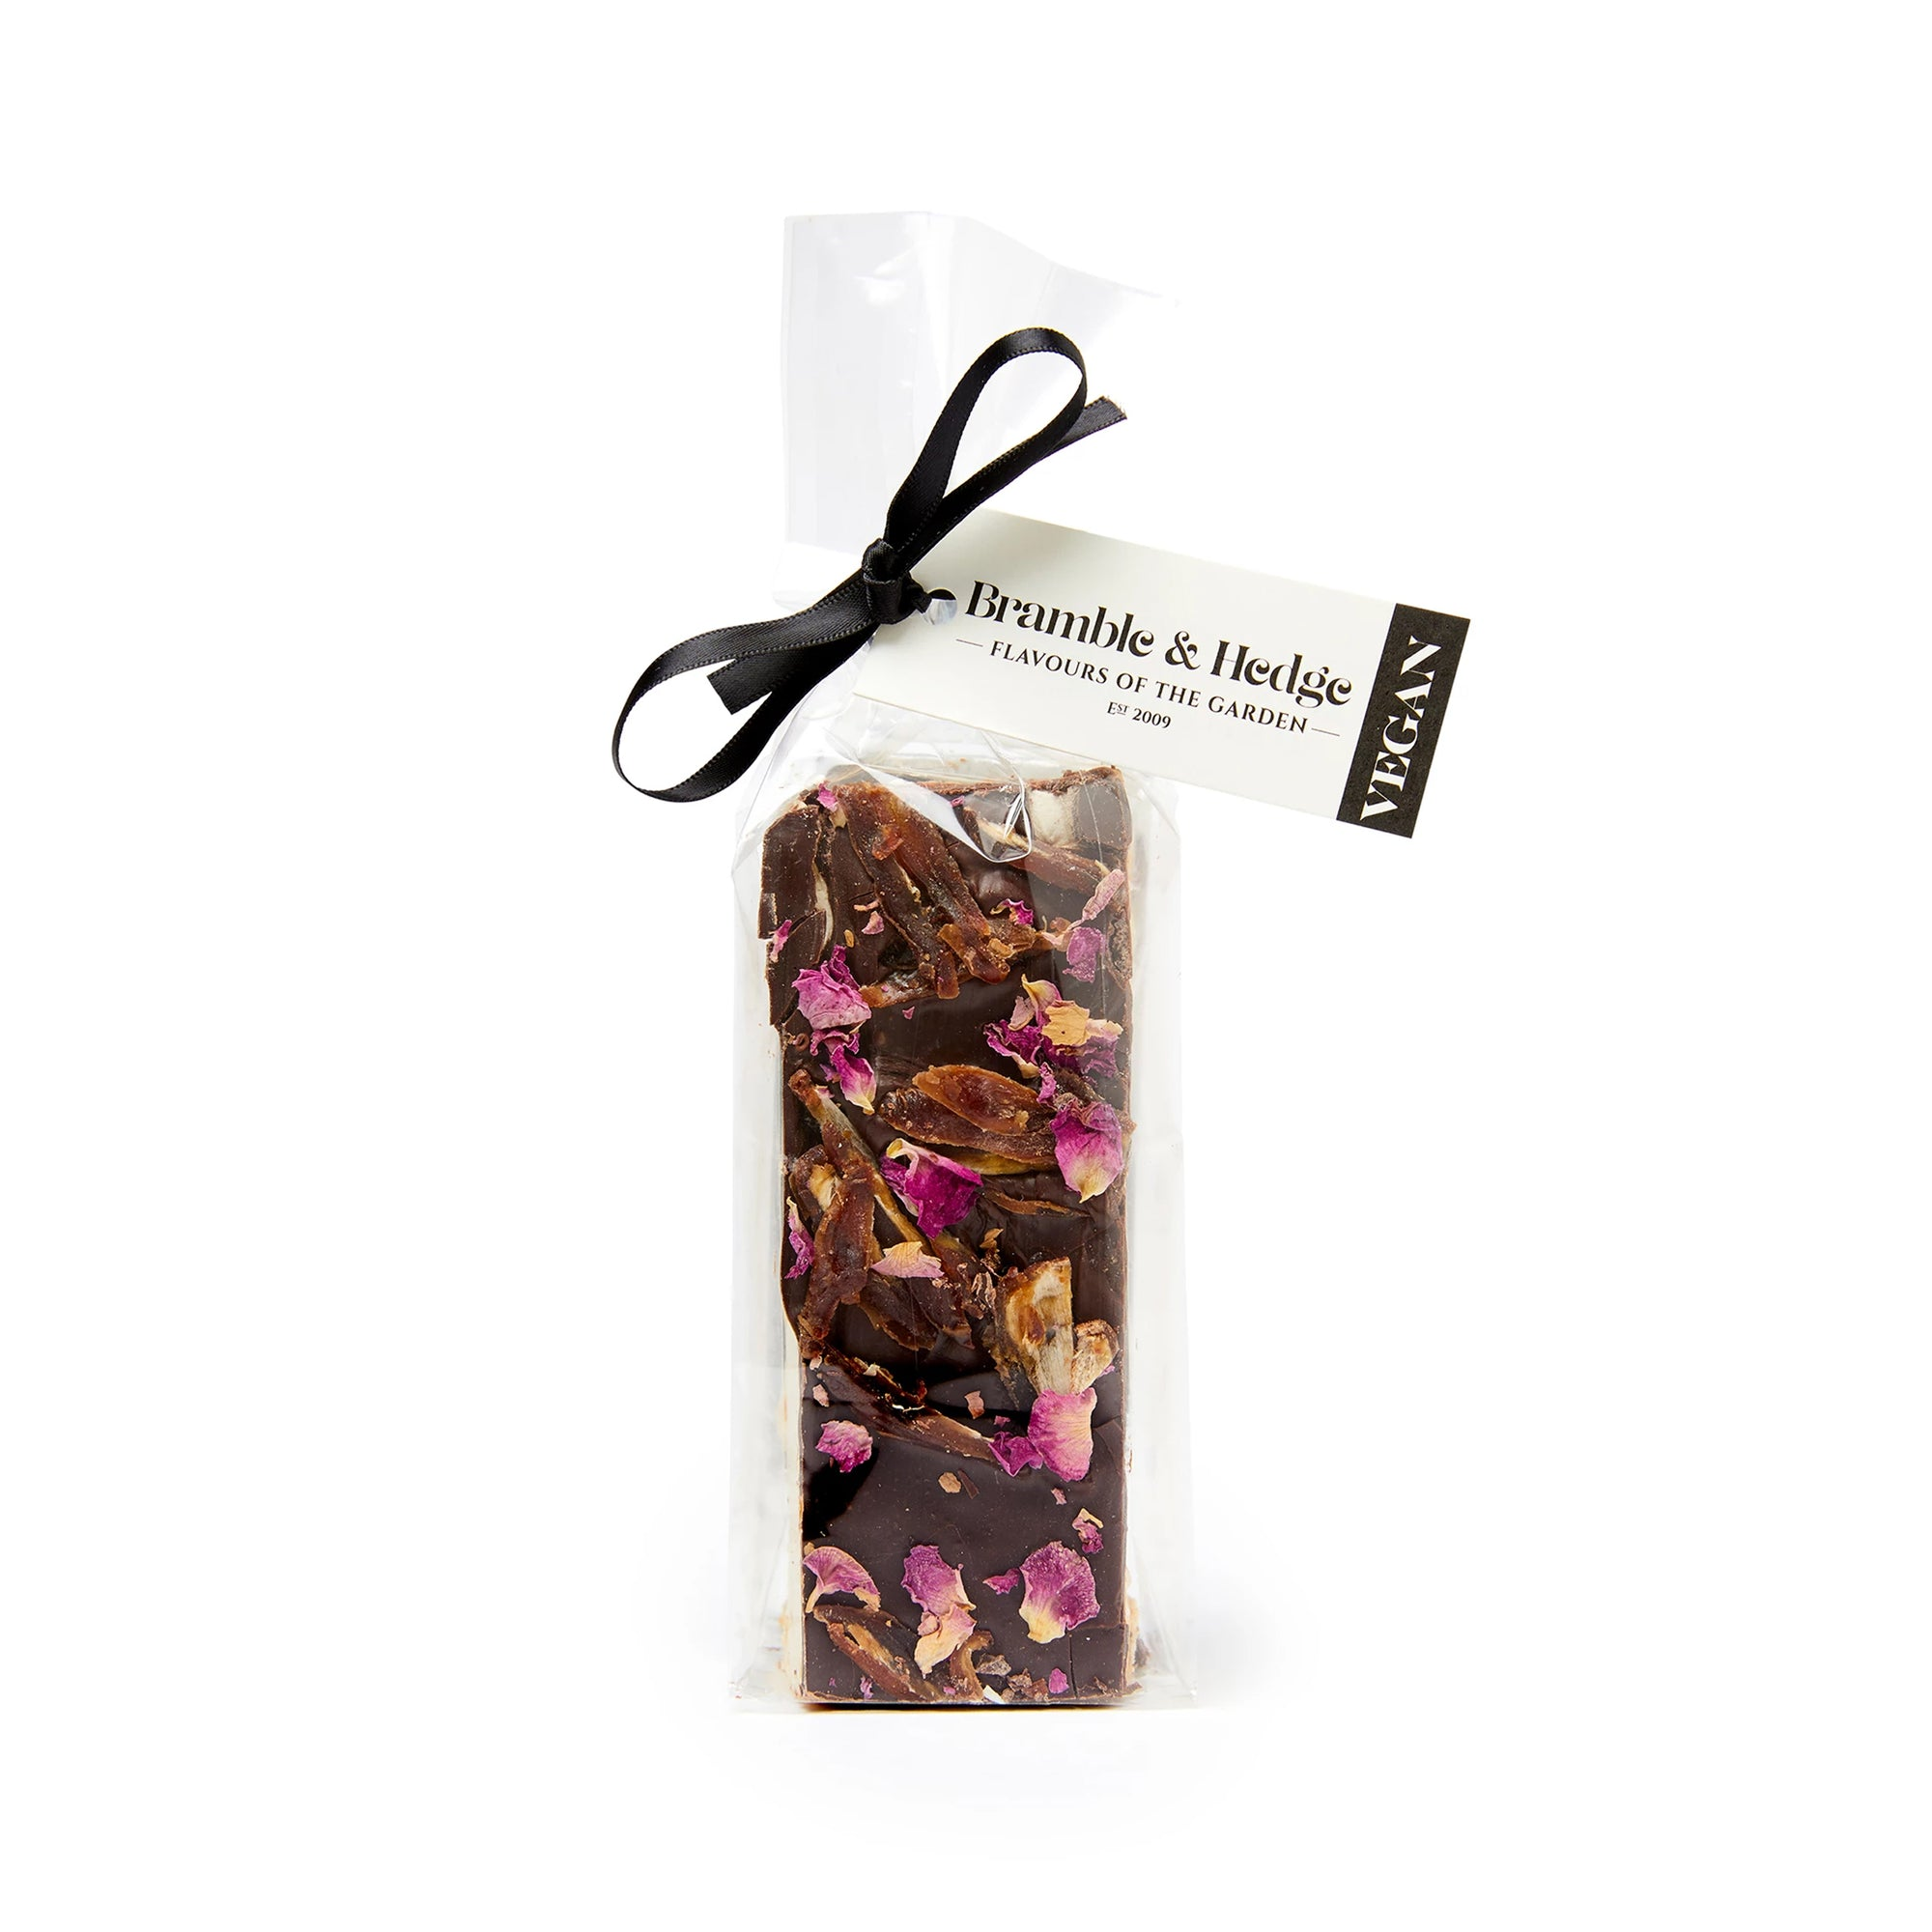 Bramble & Hedge - Vegan Nougat - Sticky Date & Caramel 150g